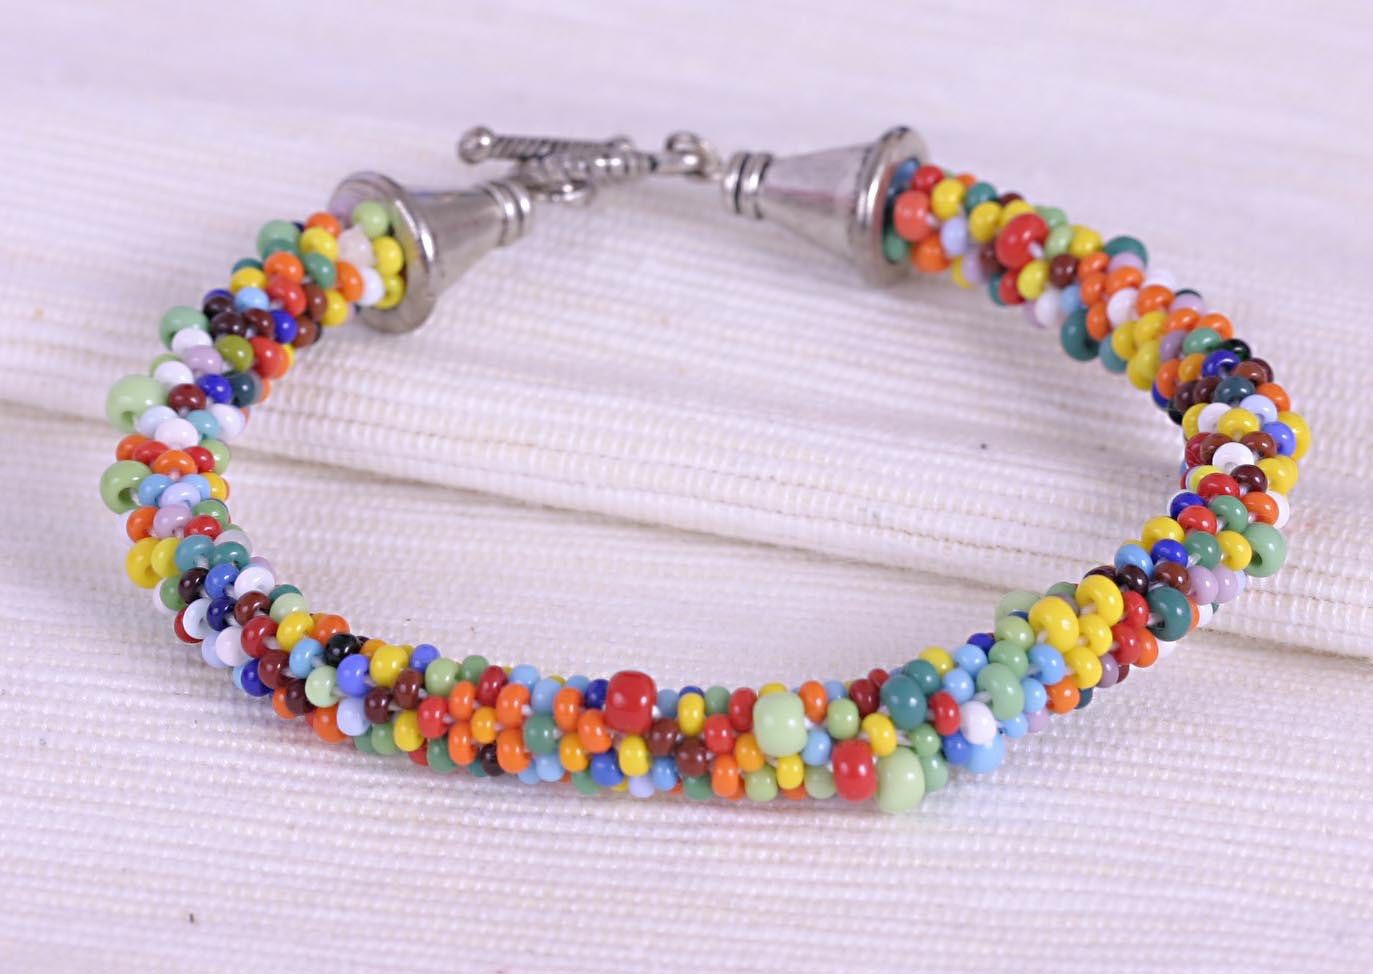 "Bracelet connectedness hook from the Czech beads ""rainbow colors"" FREE SHIPPING WORLDWIDE (12.00 USD) by Spillikinsbijou"